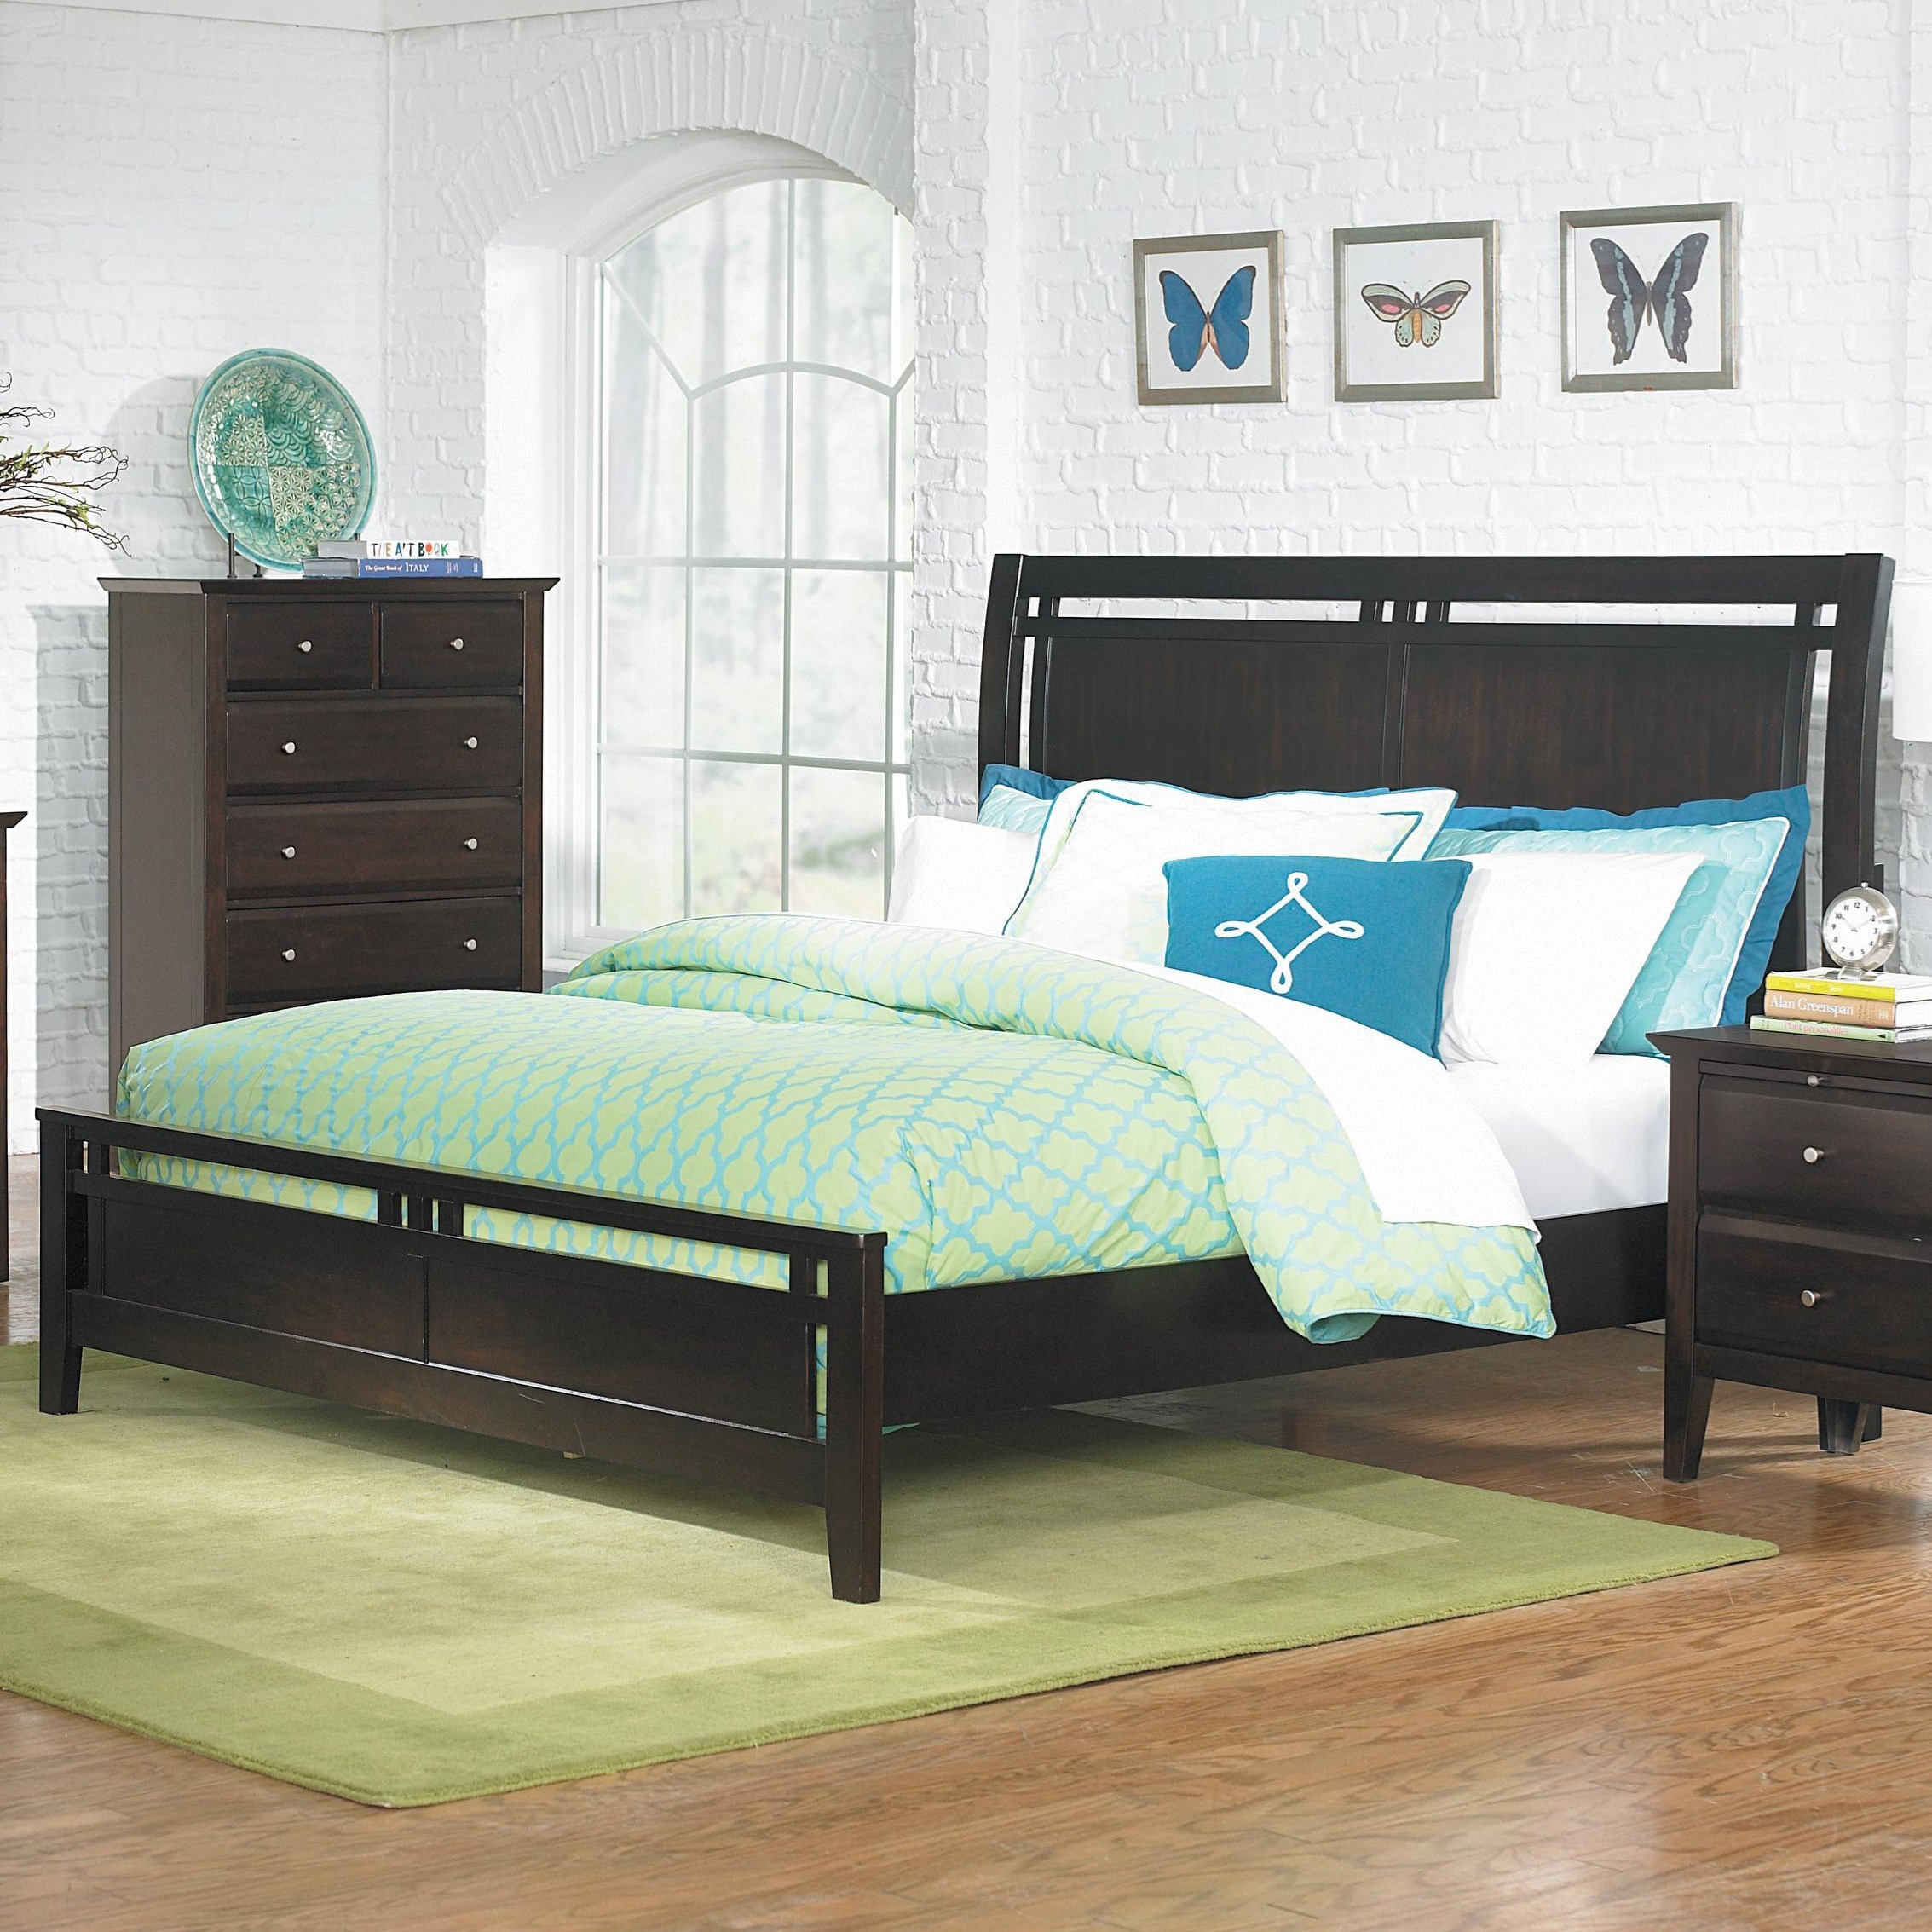 Homelegance Verano Casual Queen Low Profile Bed - Item Number: 1733-1+2+3